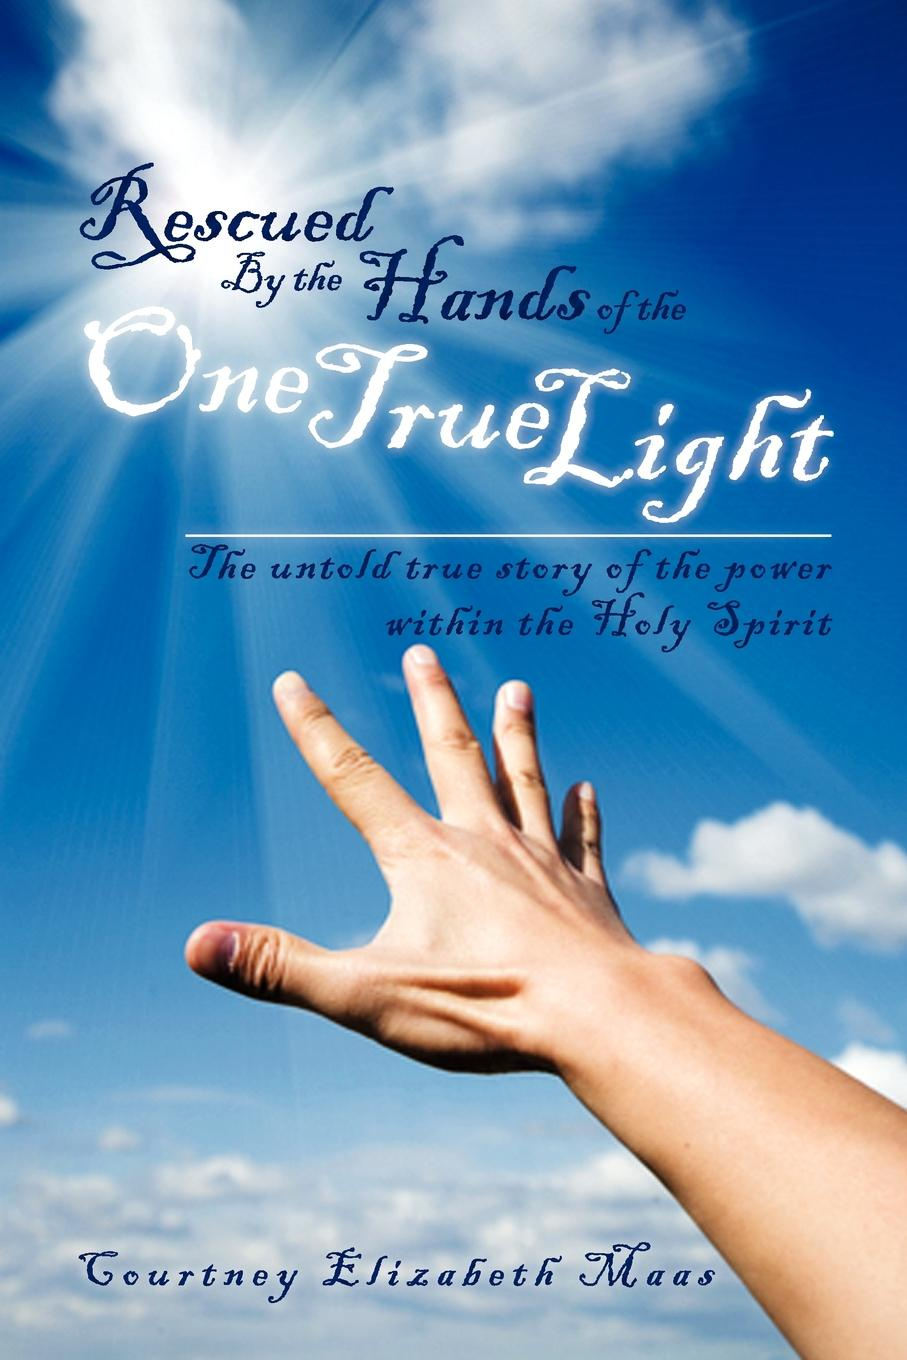 Courtney Elizabeth Maas Rescued By the Hands of One True Light. The untold true story power within Holy Spirit